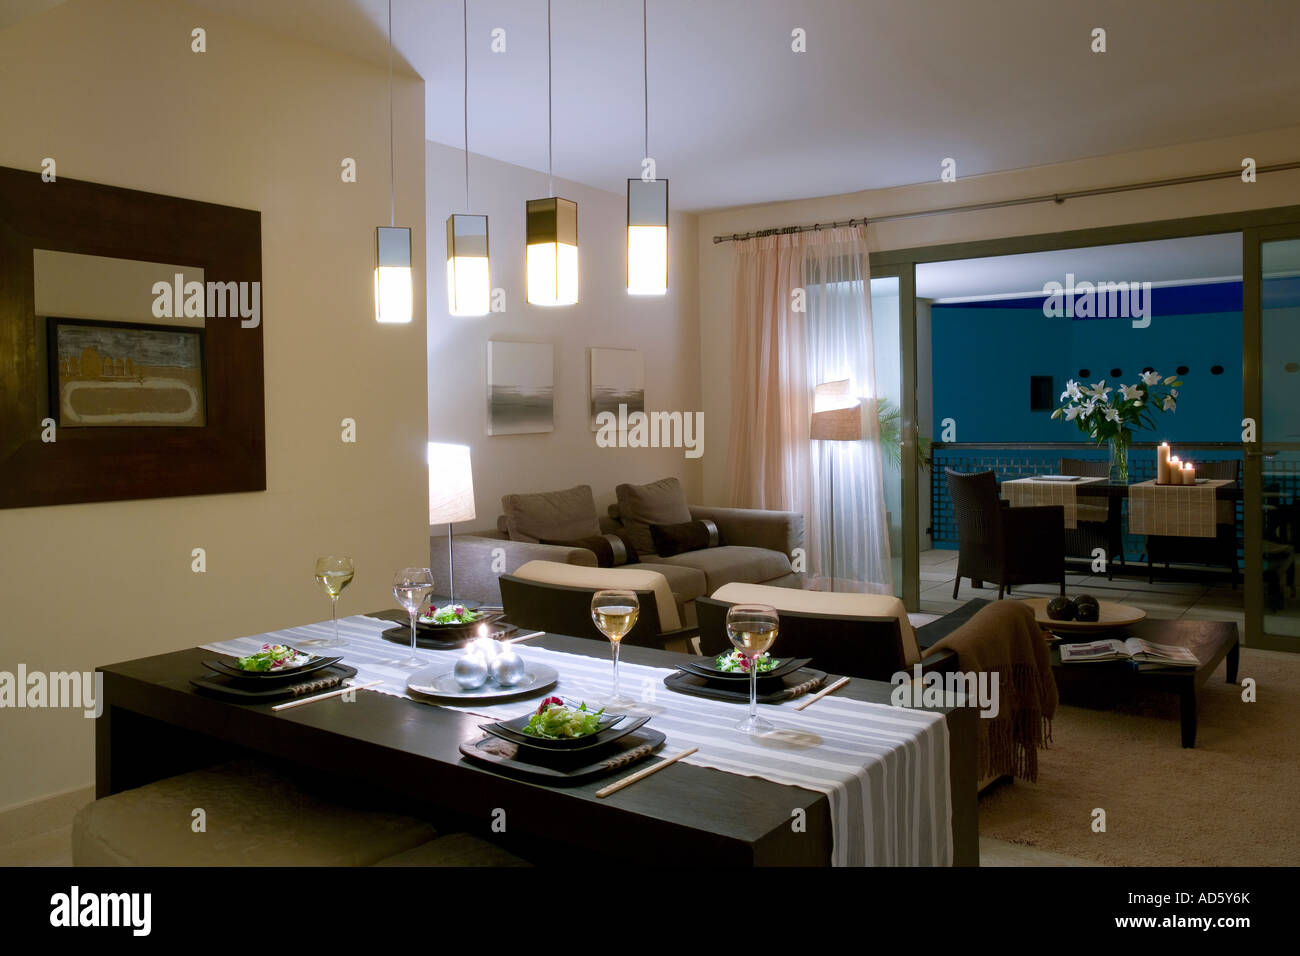 Pendant Lights Over Dining Table In Modern Apartment Living Room With Stock Photo Alamy